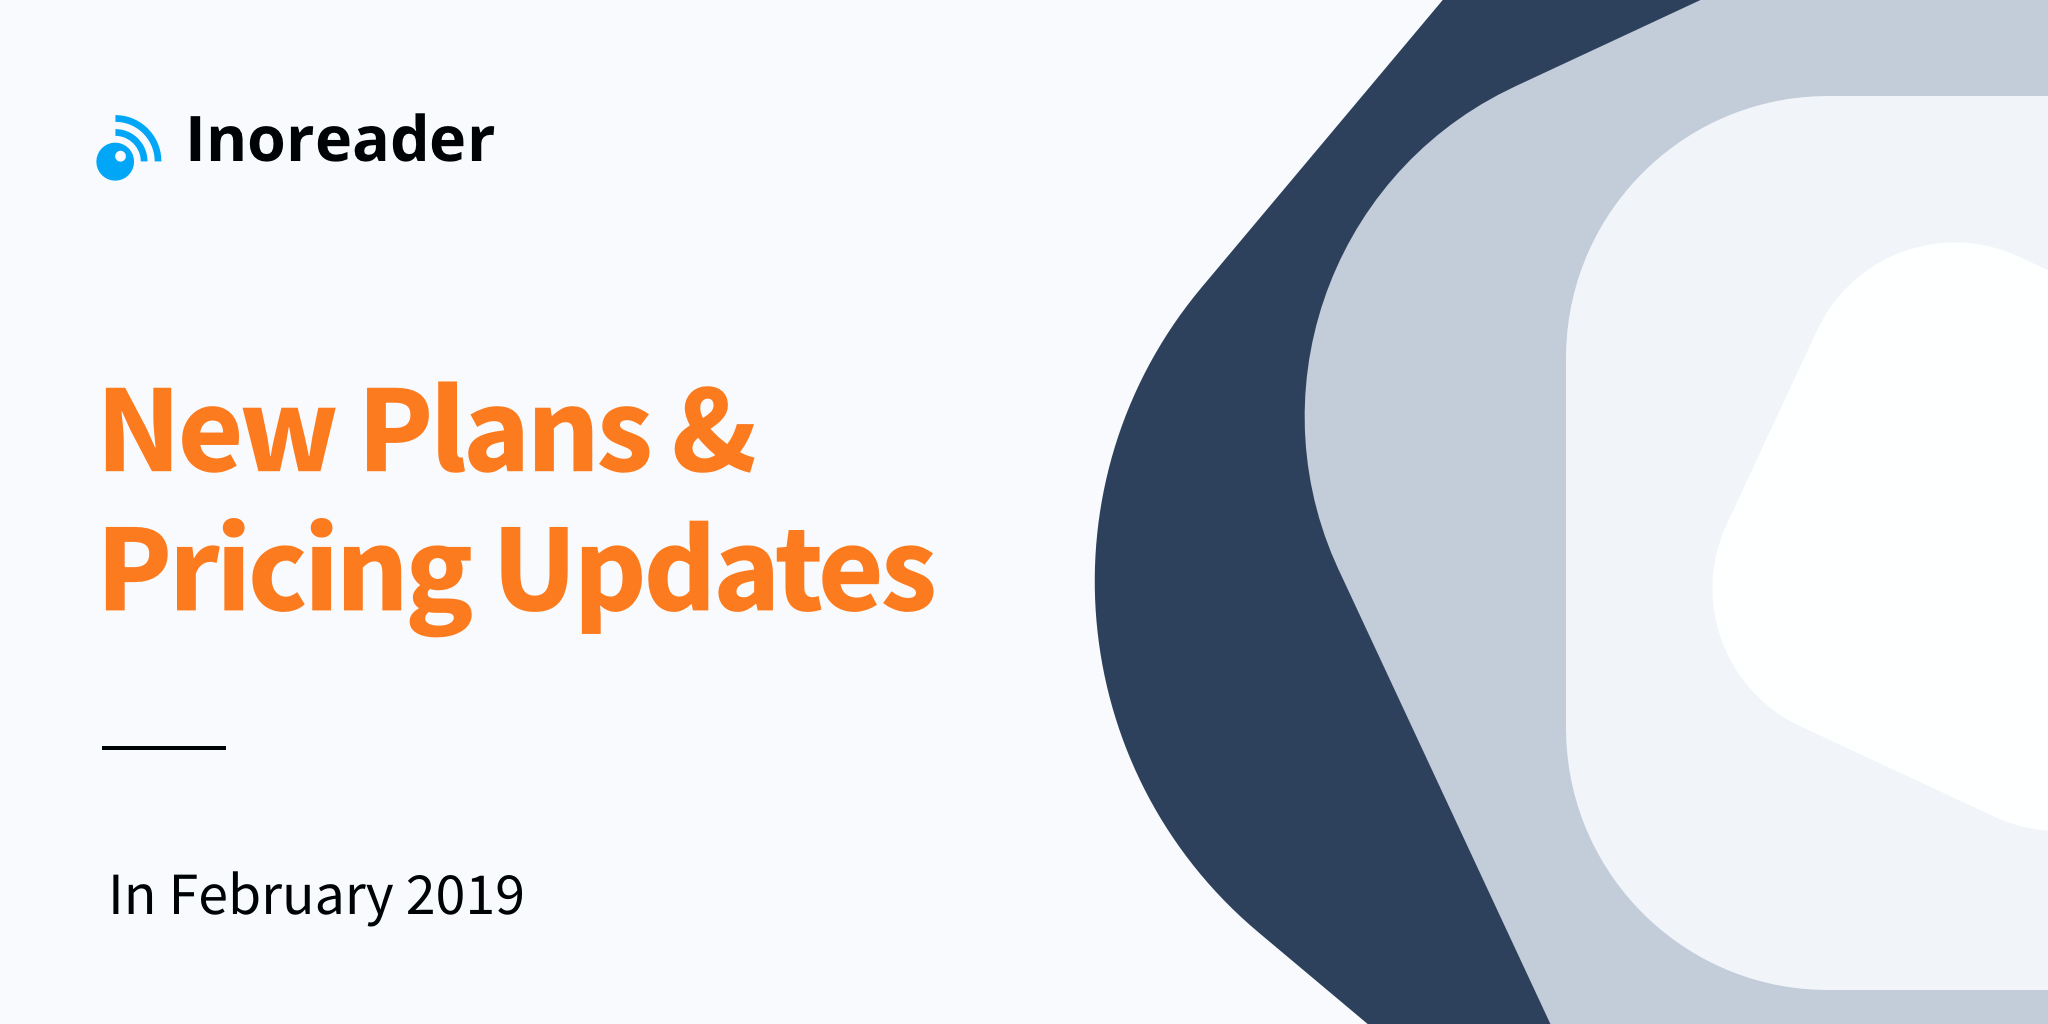 352834b2ae0 Official Announcement: Inoreader New Plans and Pricing Updates in February  2019